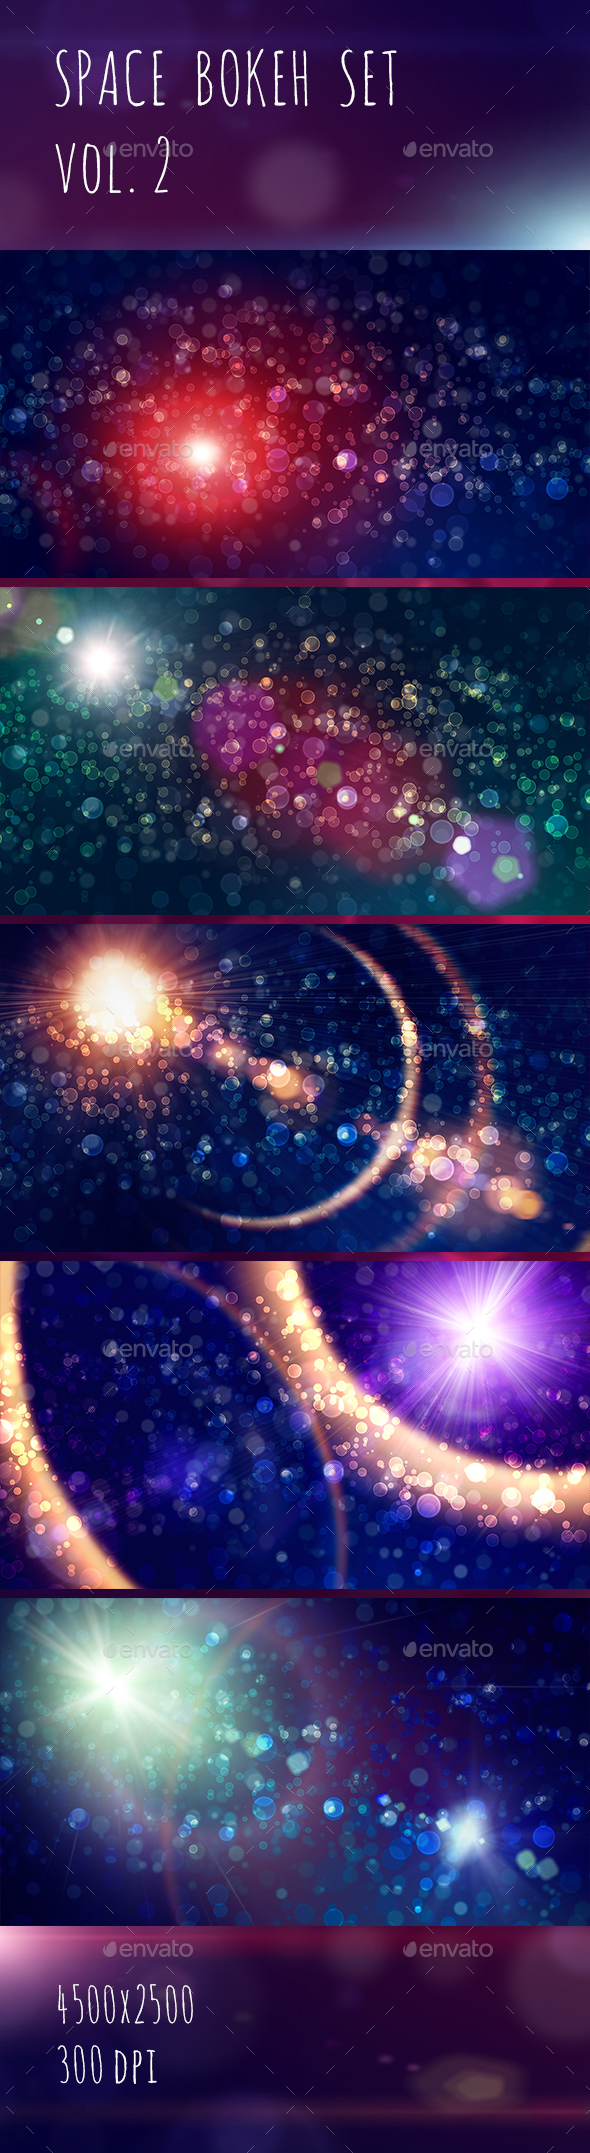 Space Bokeh Light Set vol.2 - Abstract Backgrounds